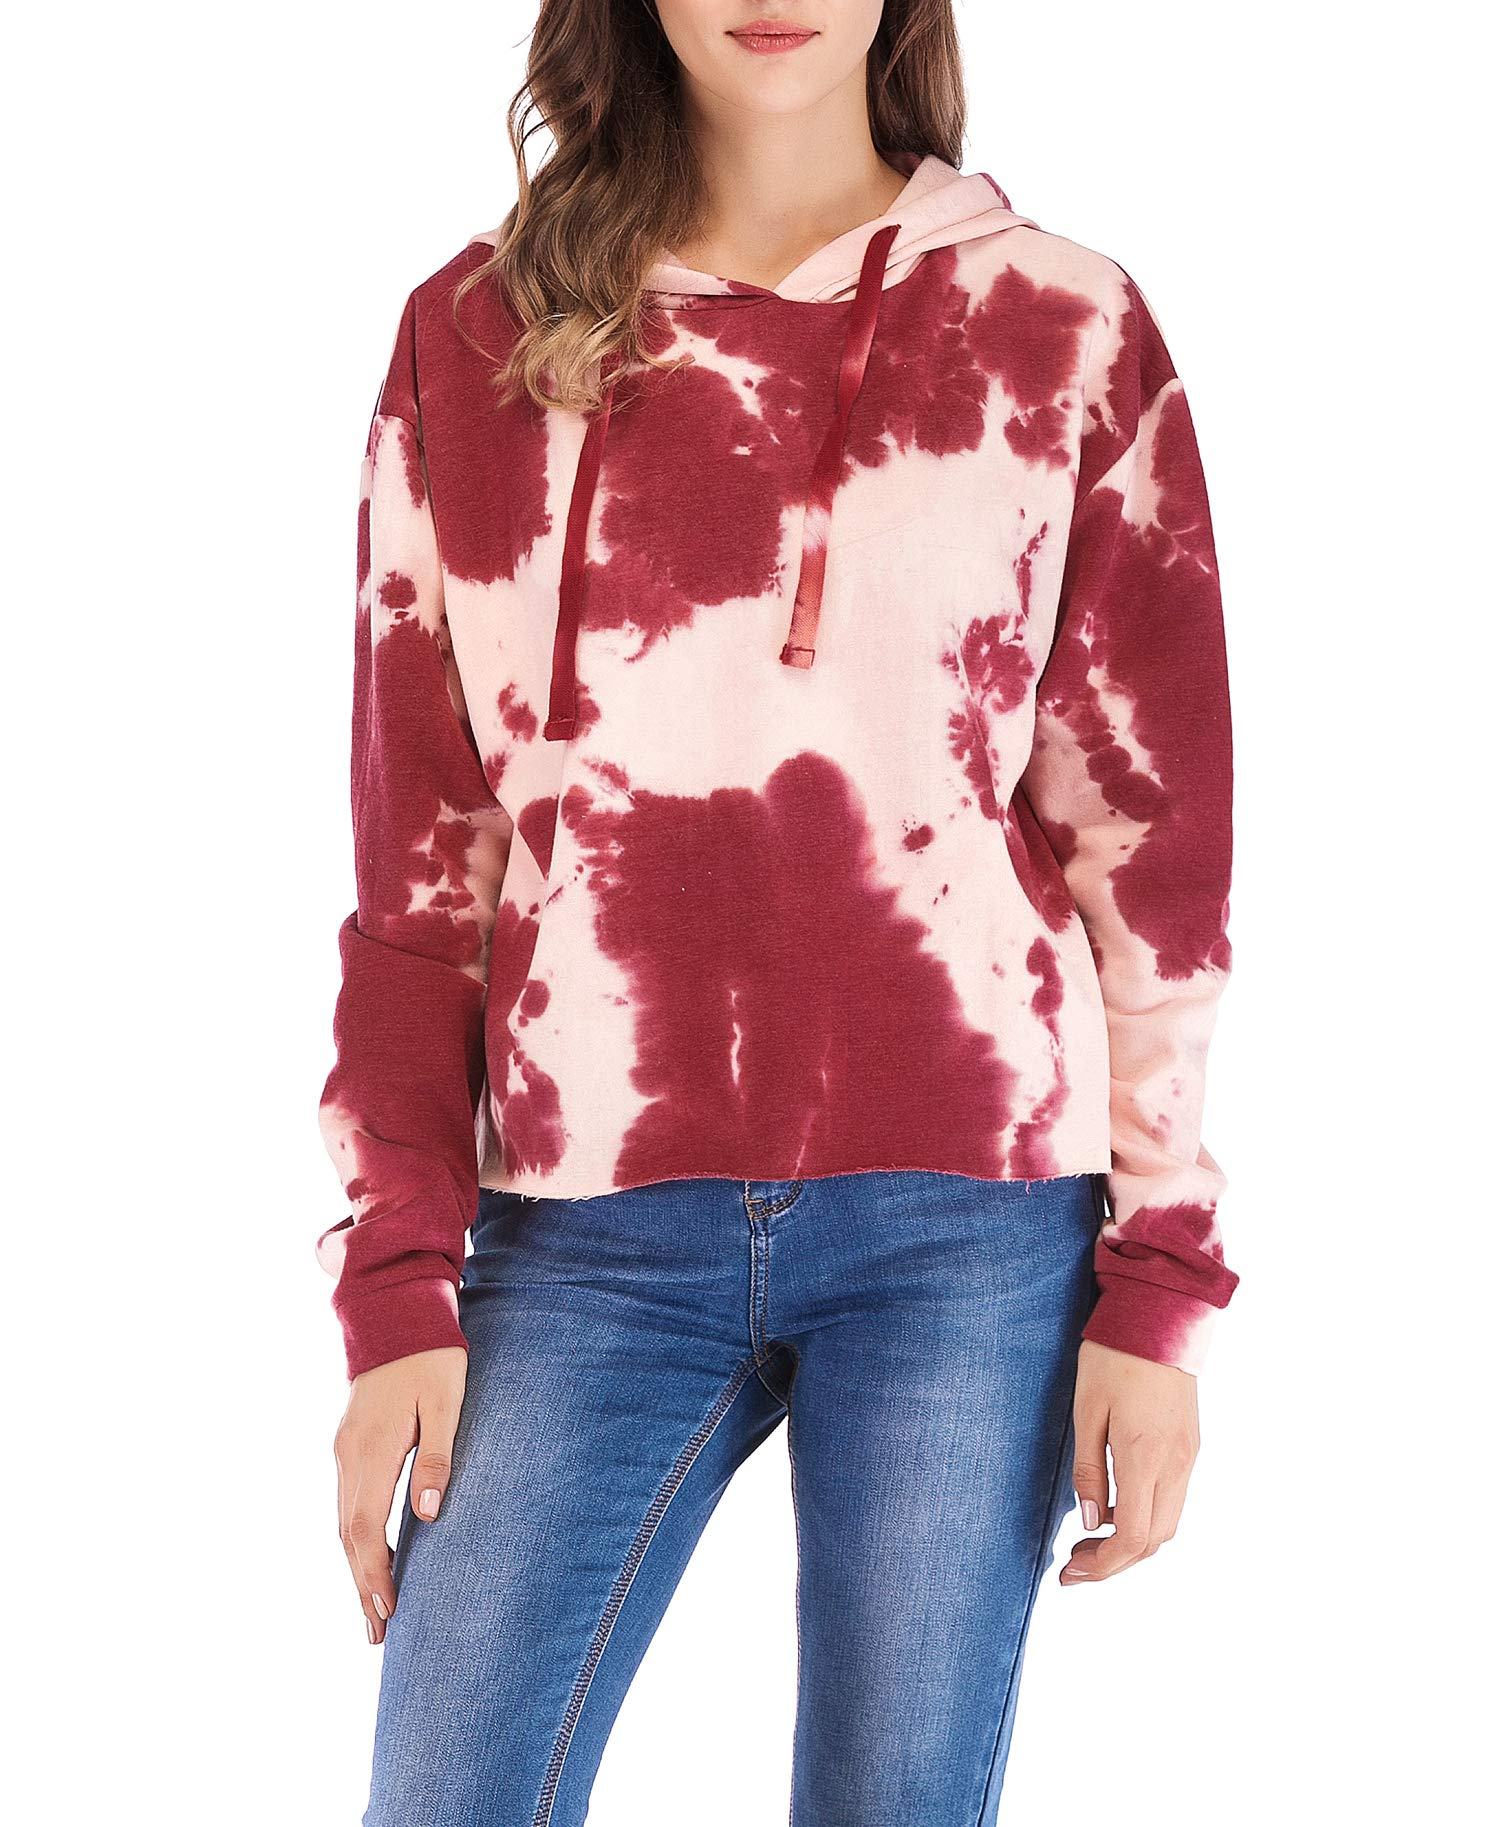 Eanklosco Womens Casual Long Sleeve Tie Dye Hoody (Red, L)